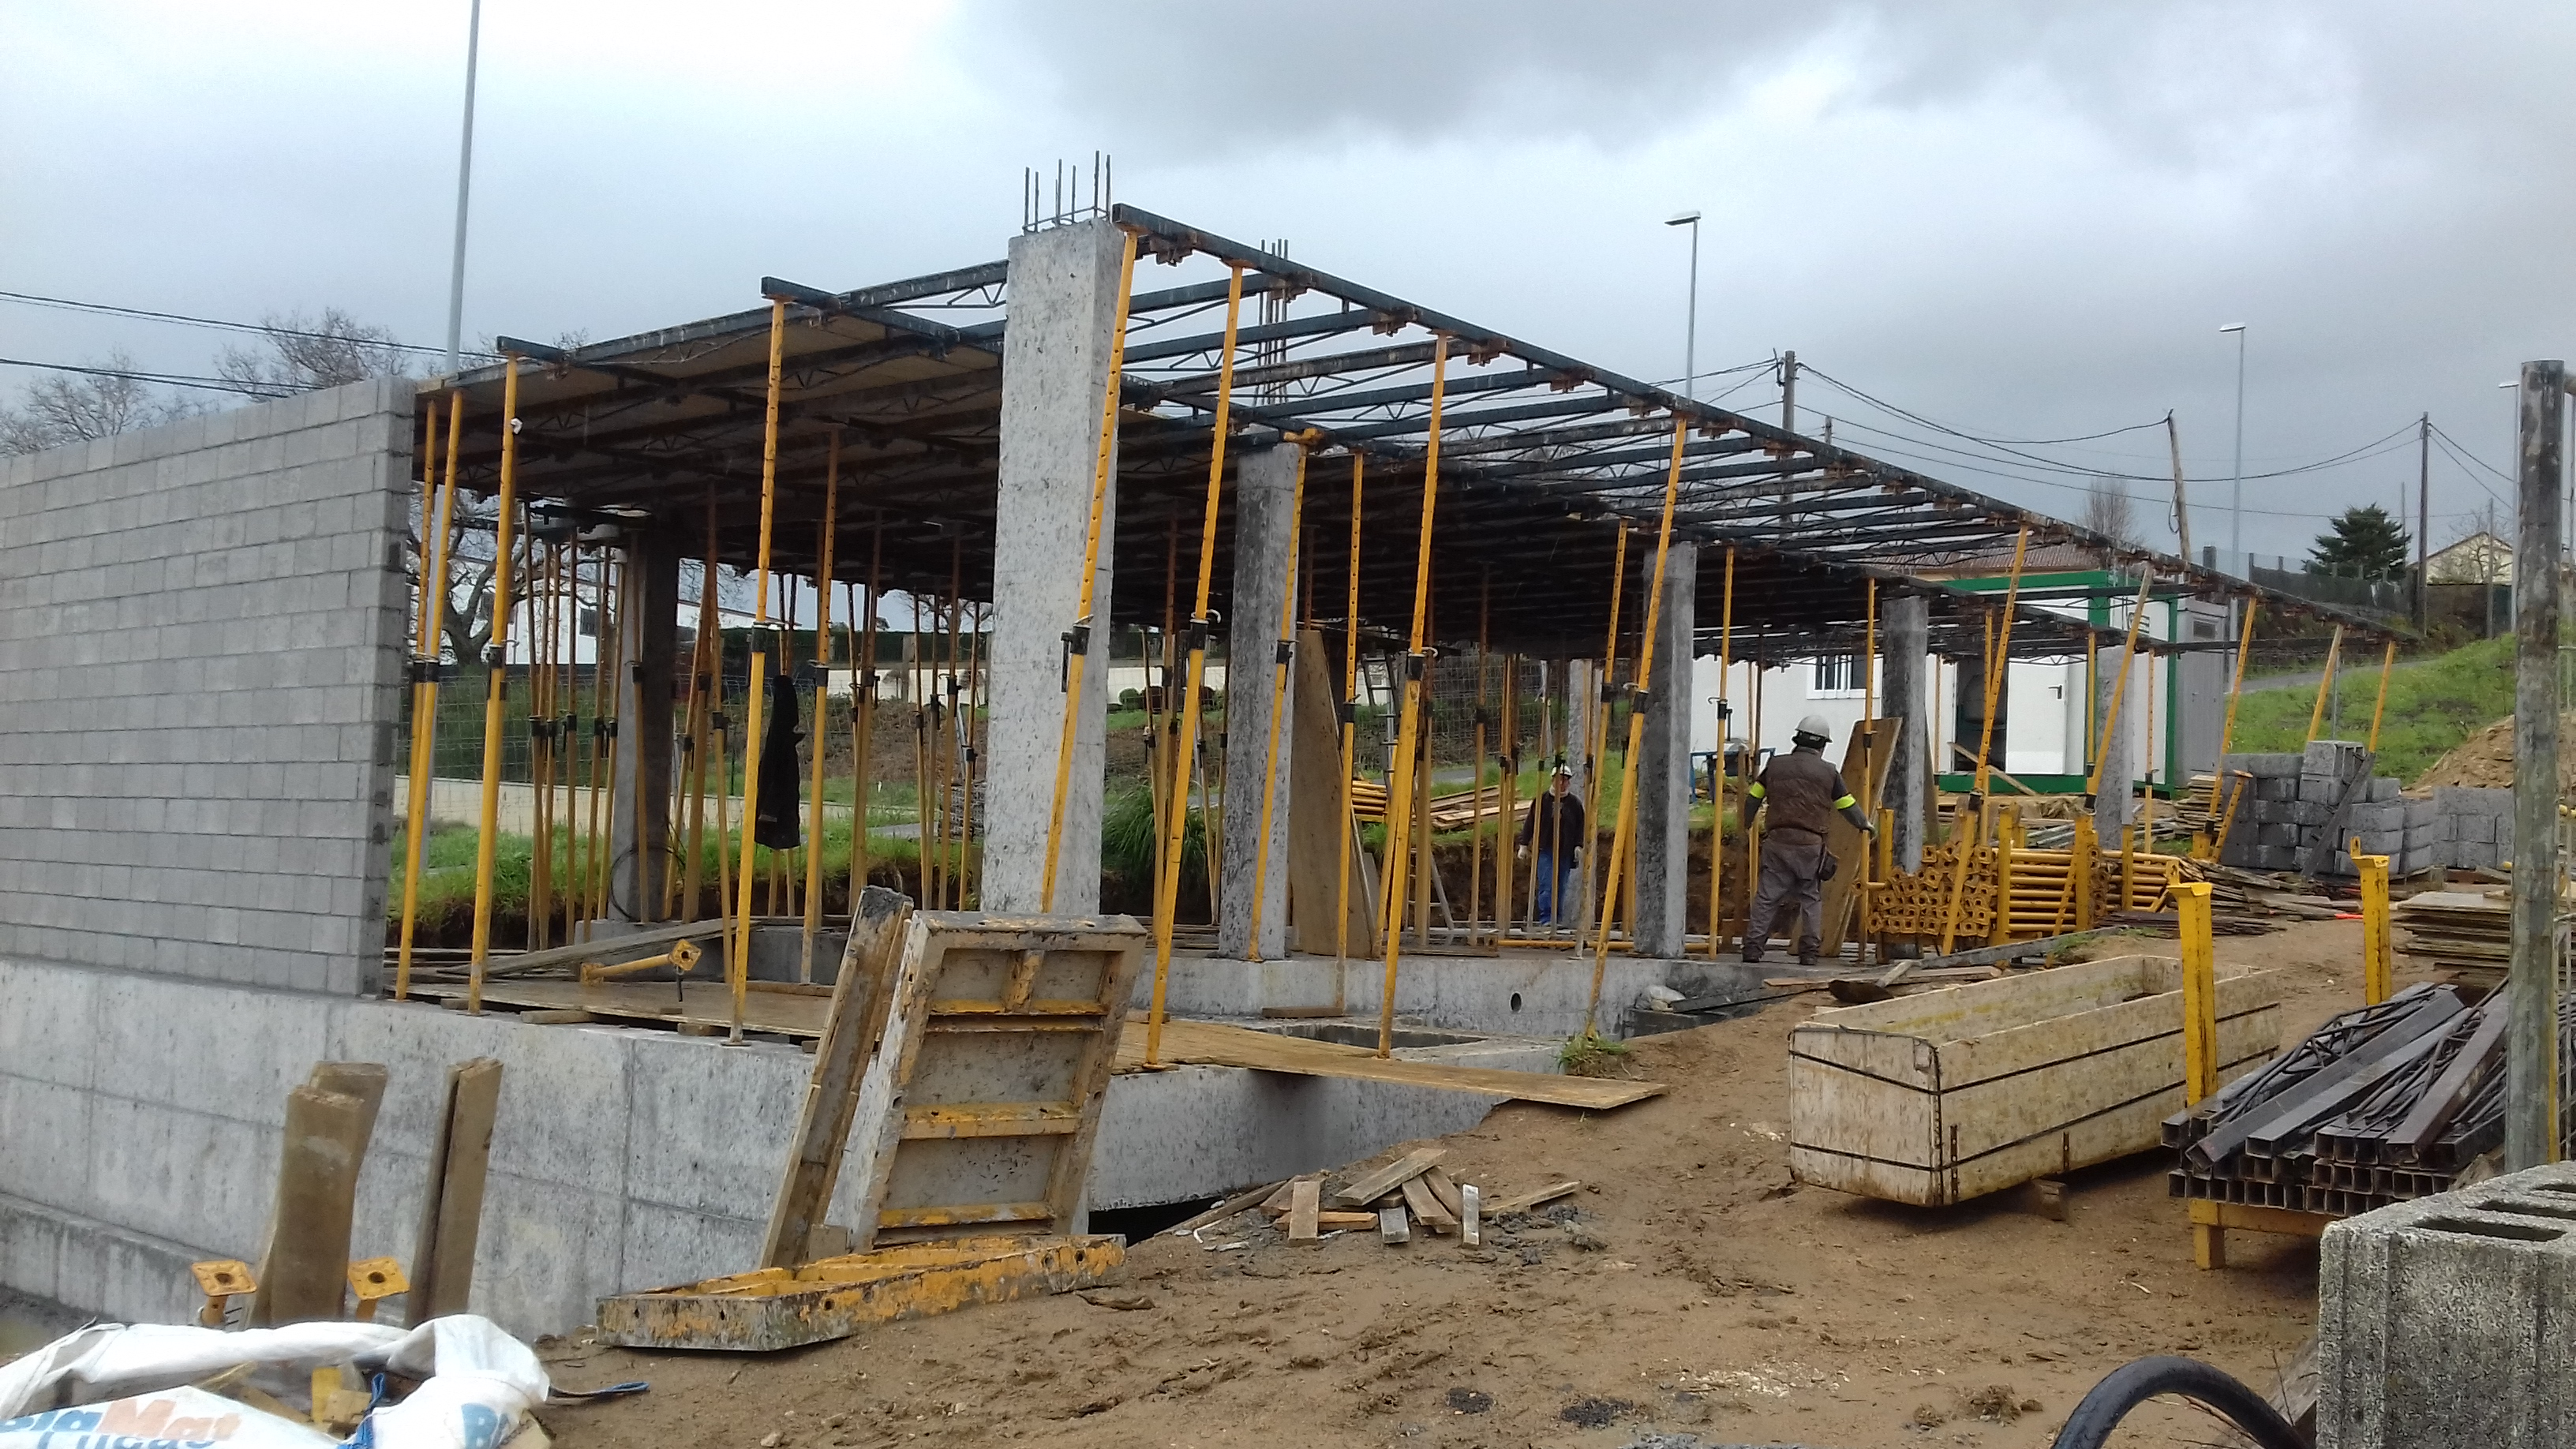 construccion vivienda raices